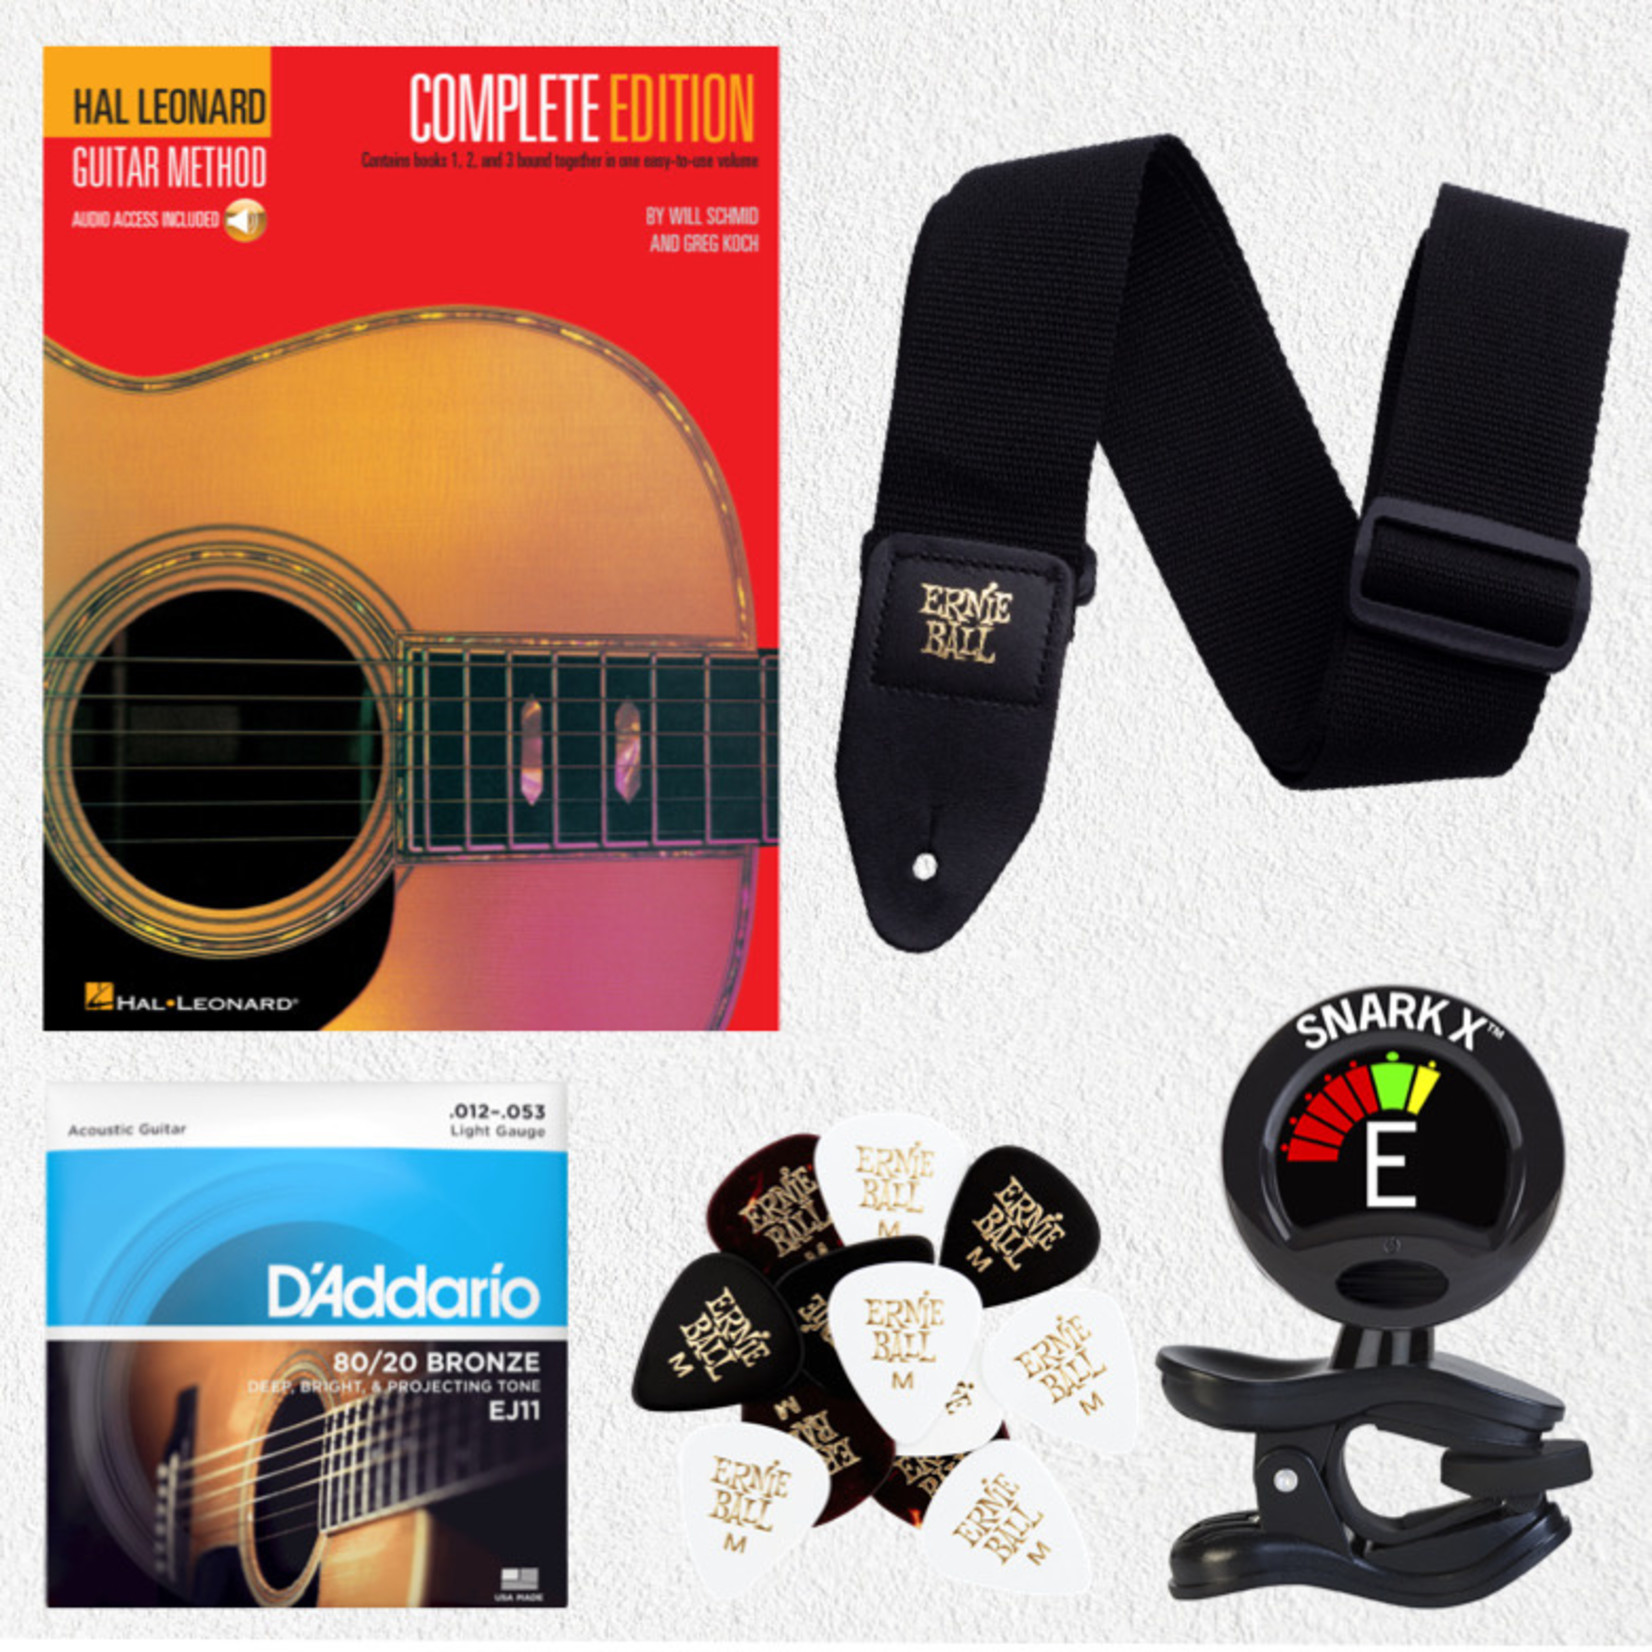 Guitar Class Accessory Kit - Complete